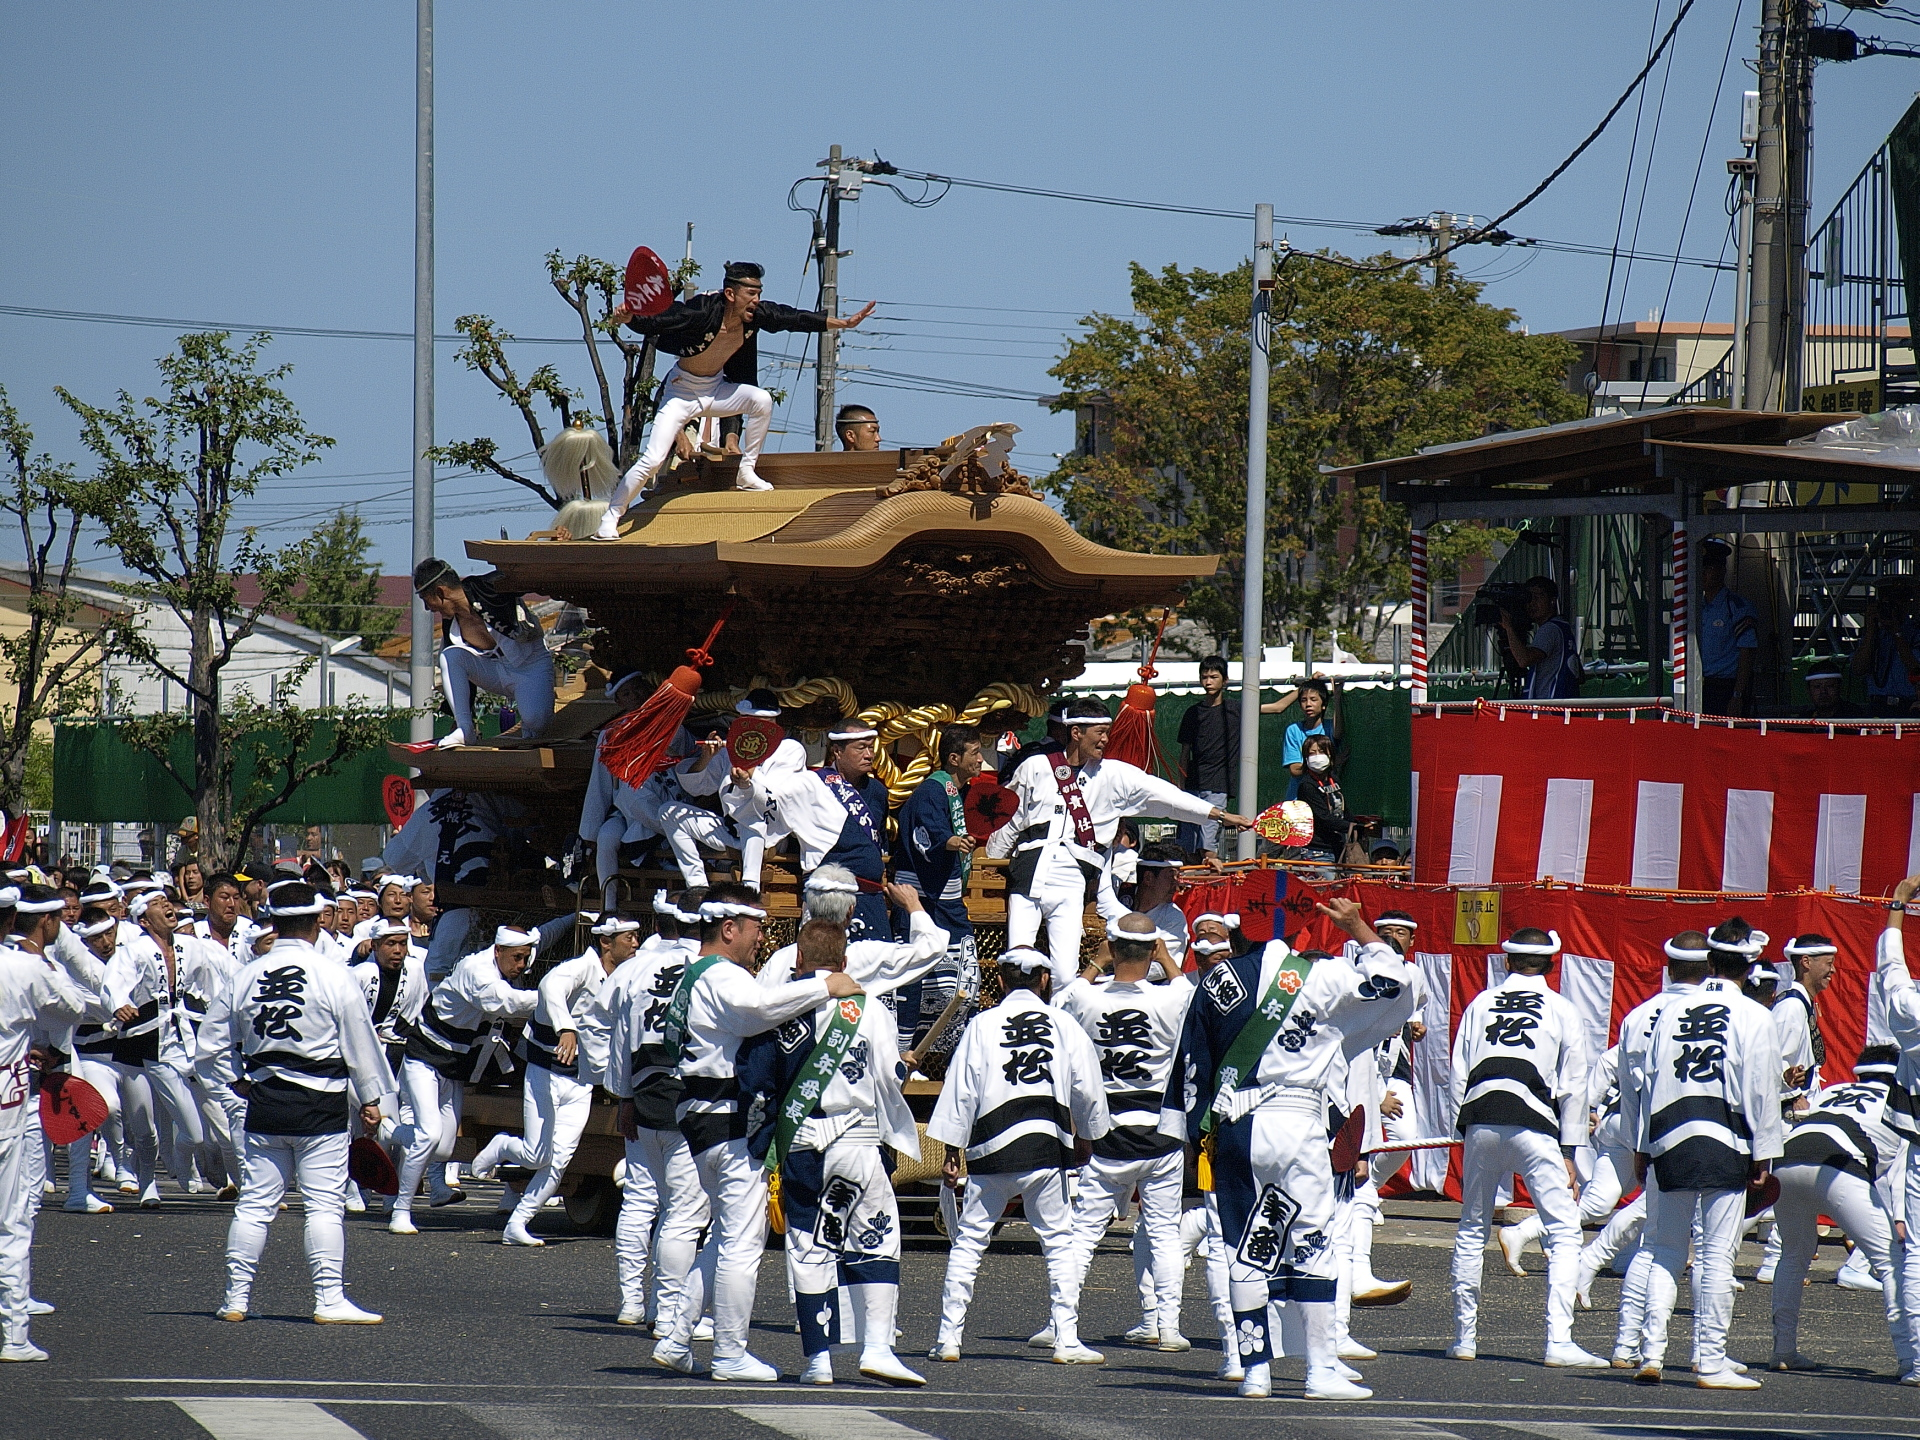 https://upload.wikimedia.org/wikipedia/commons/1/10/Kishiwada-Danjiri-Matsuri_Osaka_Japan.jpg